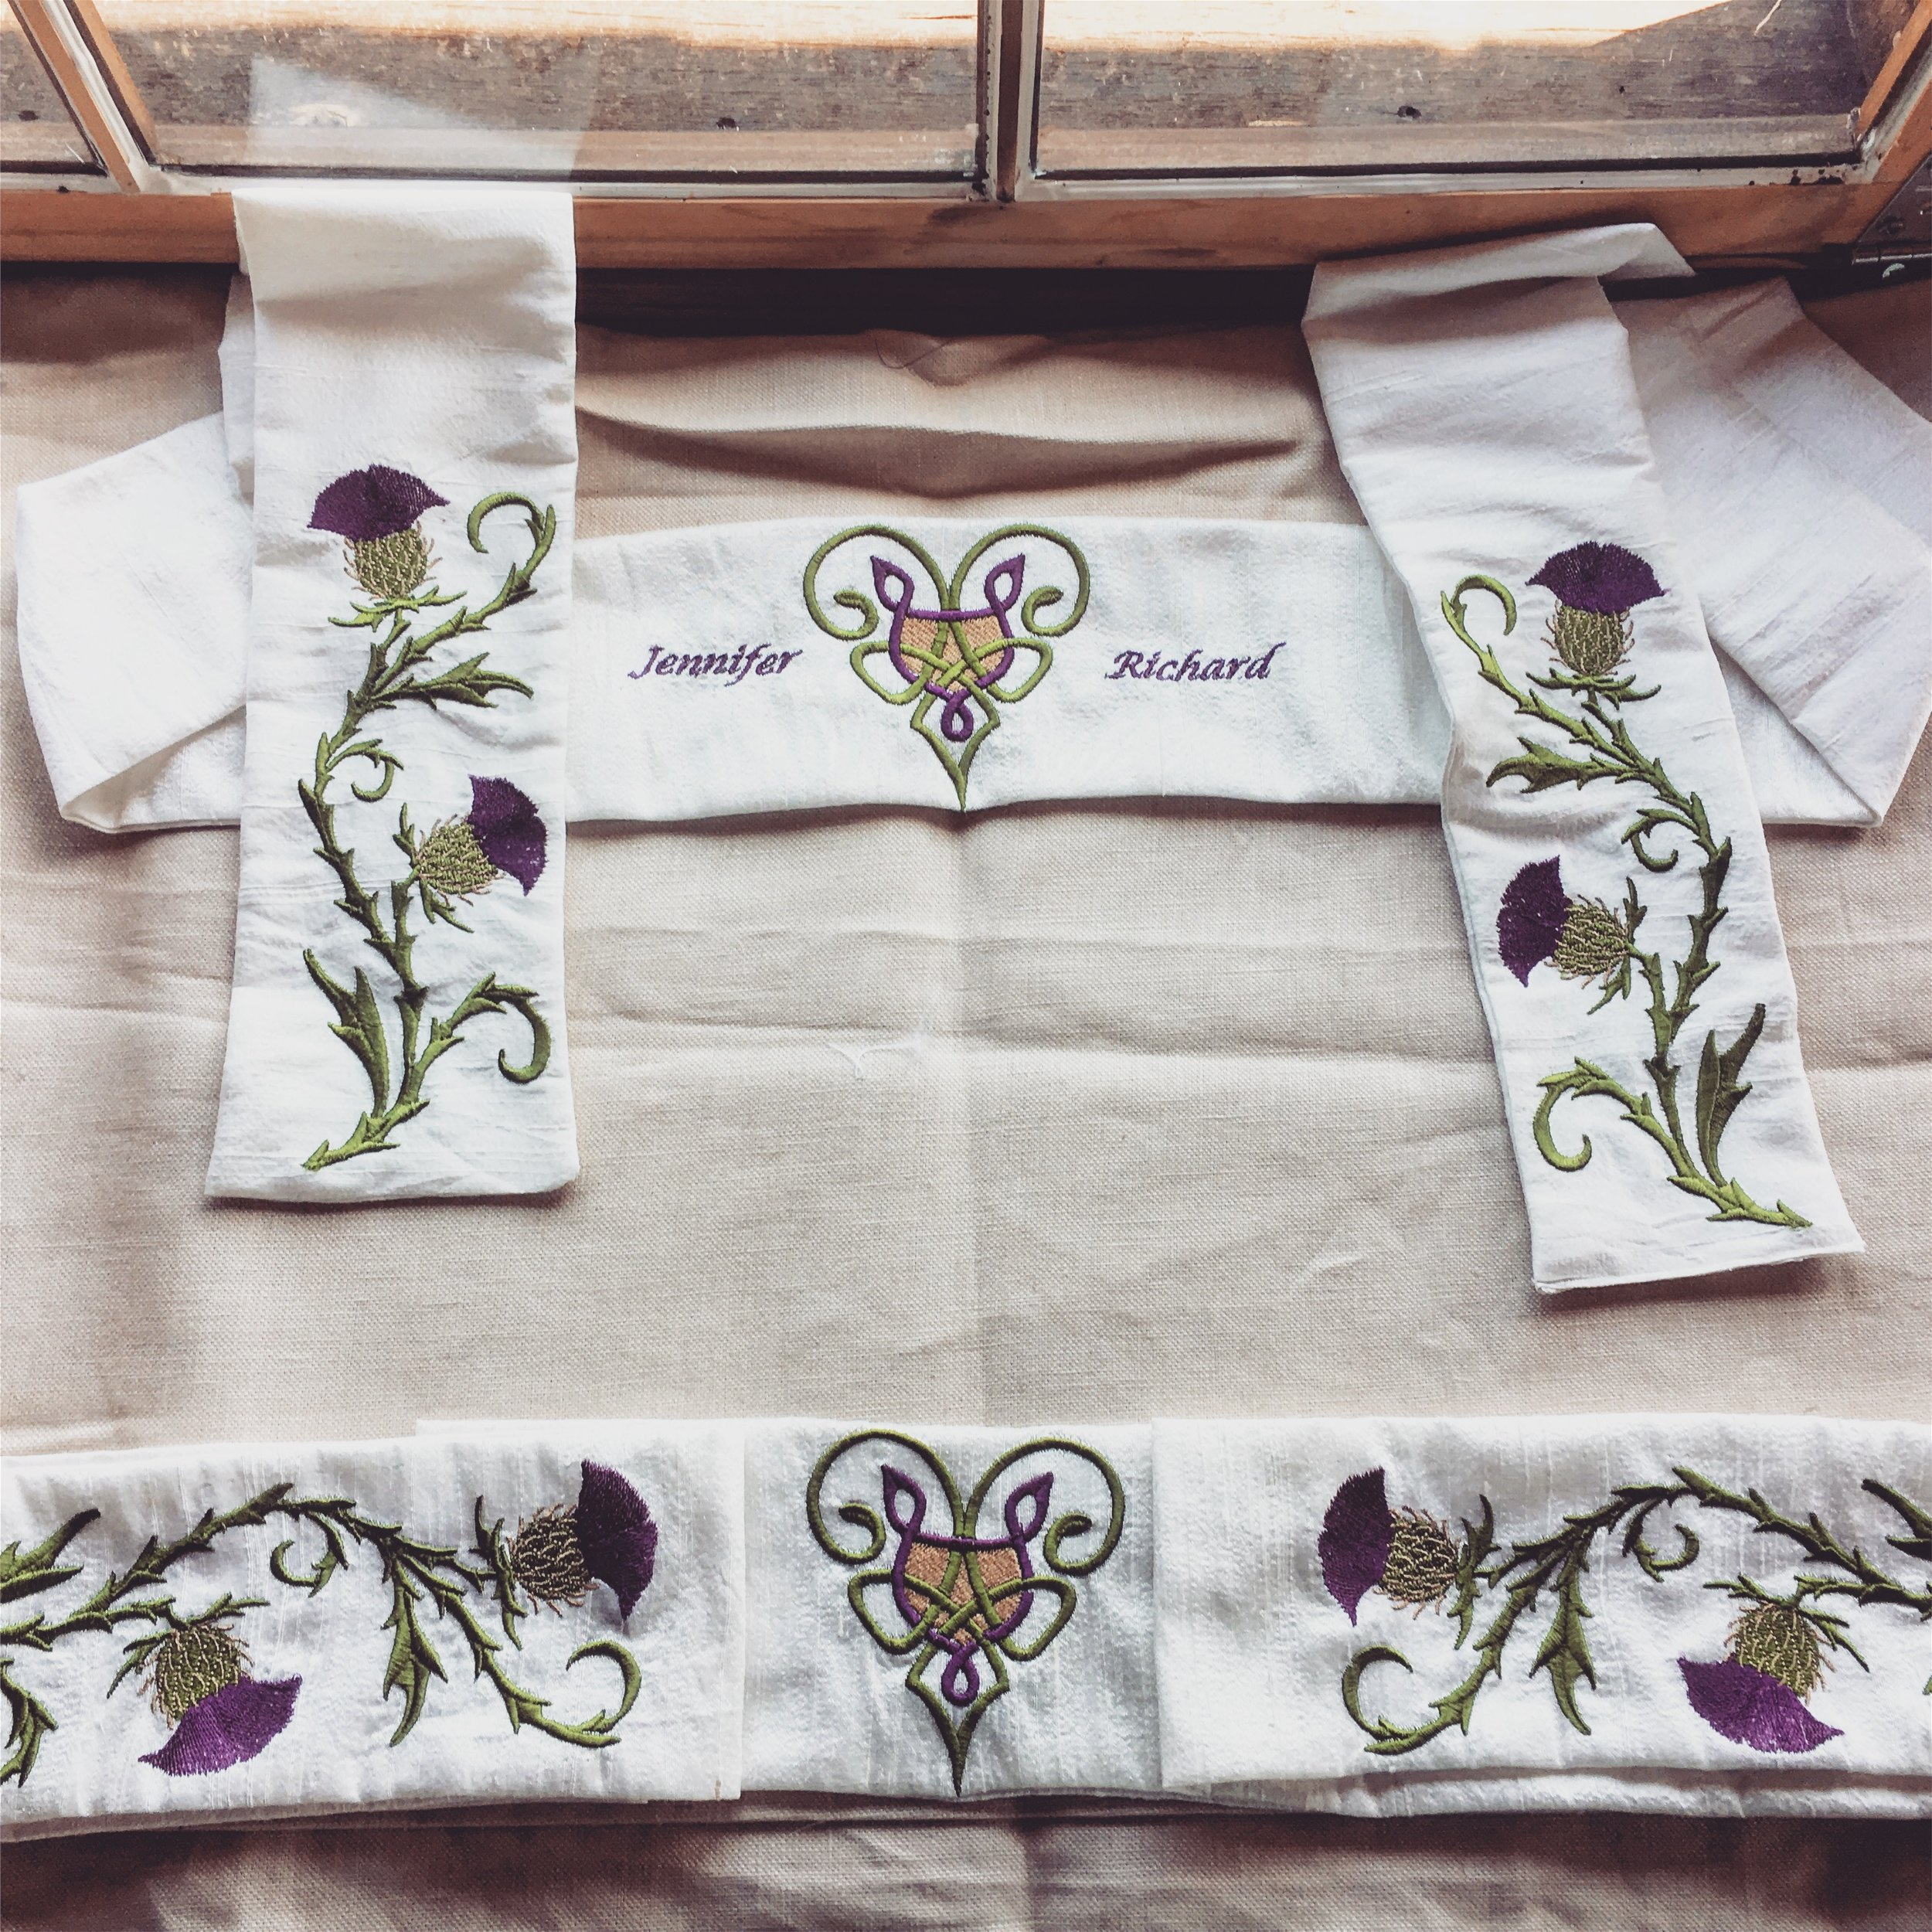 Linen Cloths with Thistle Motif